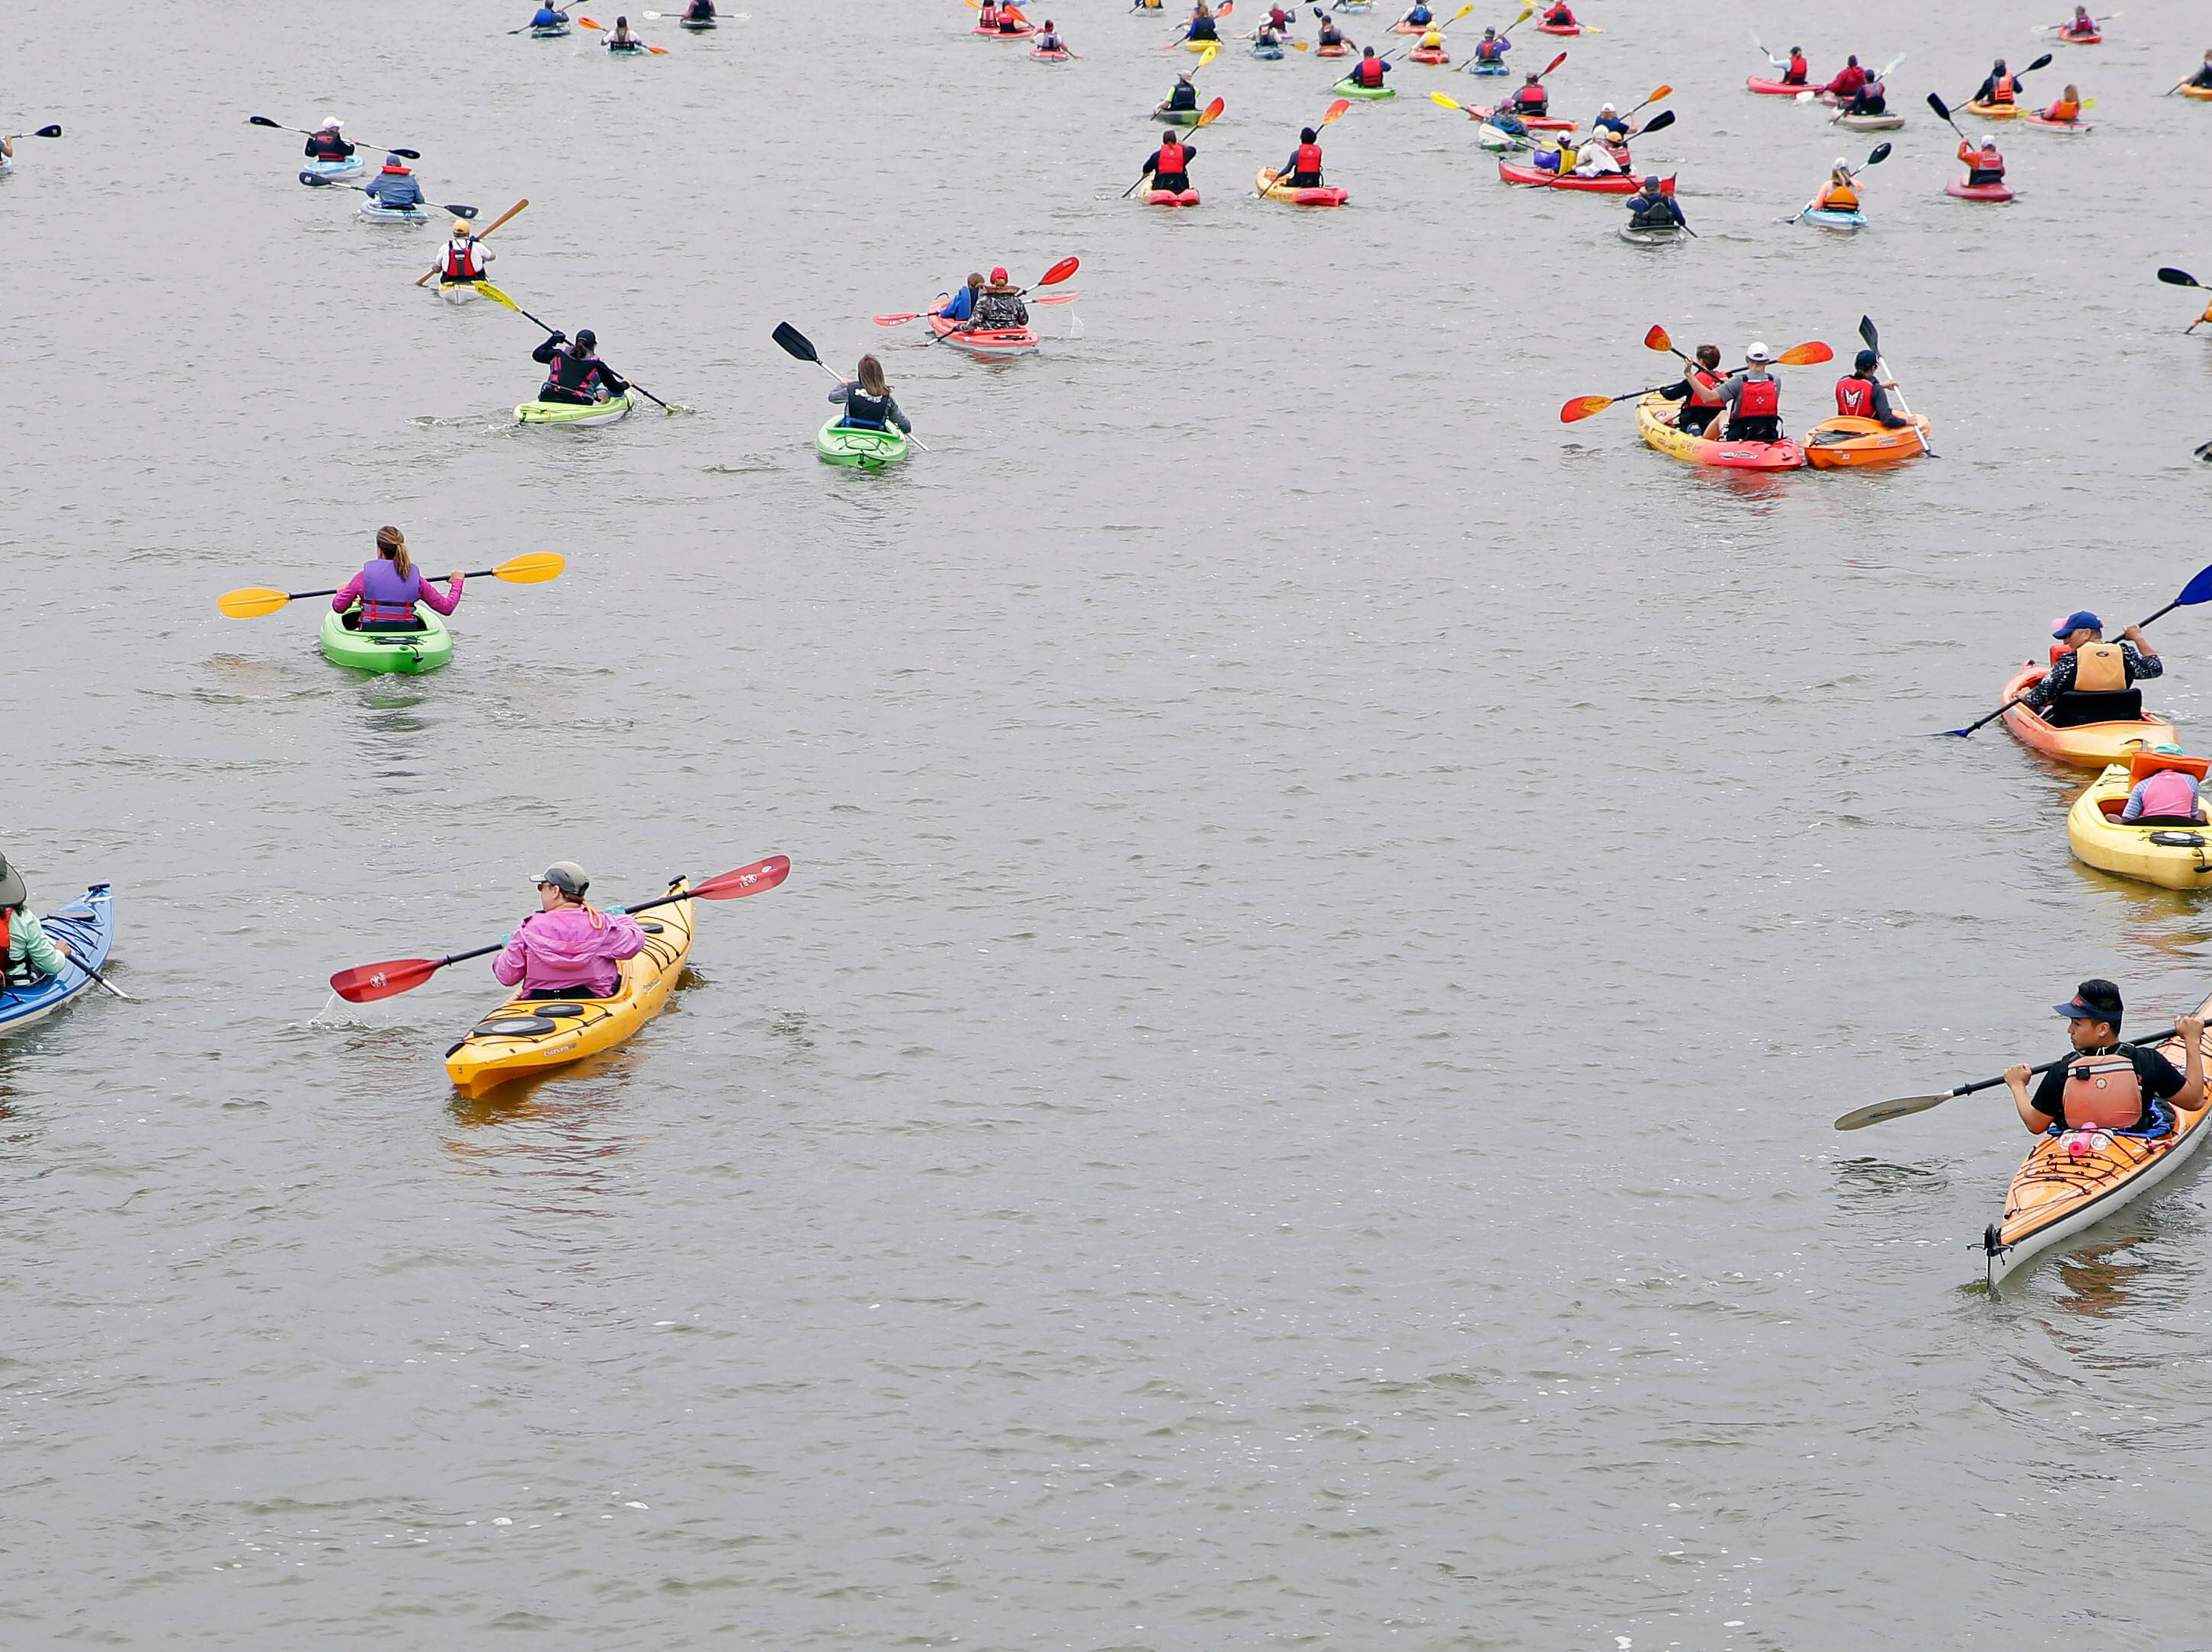 The Park-to-Park Paddle takes place Saturday, July 21, 2018, as paddlers make their way from Neenah to Appleton, Wis.